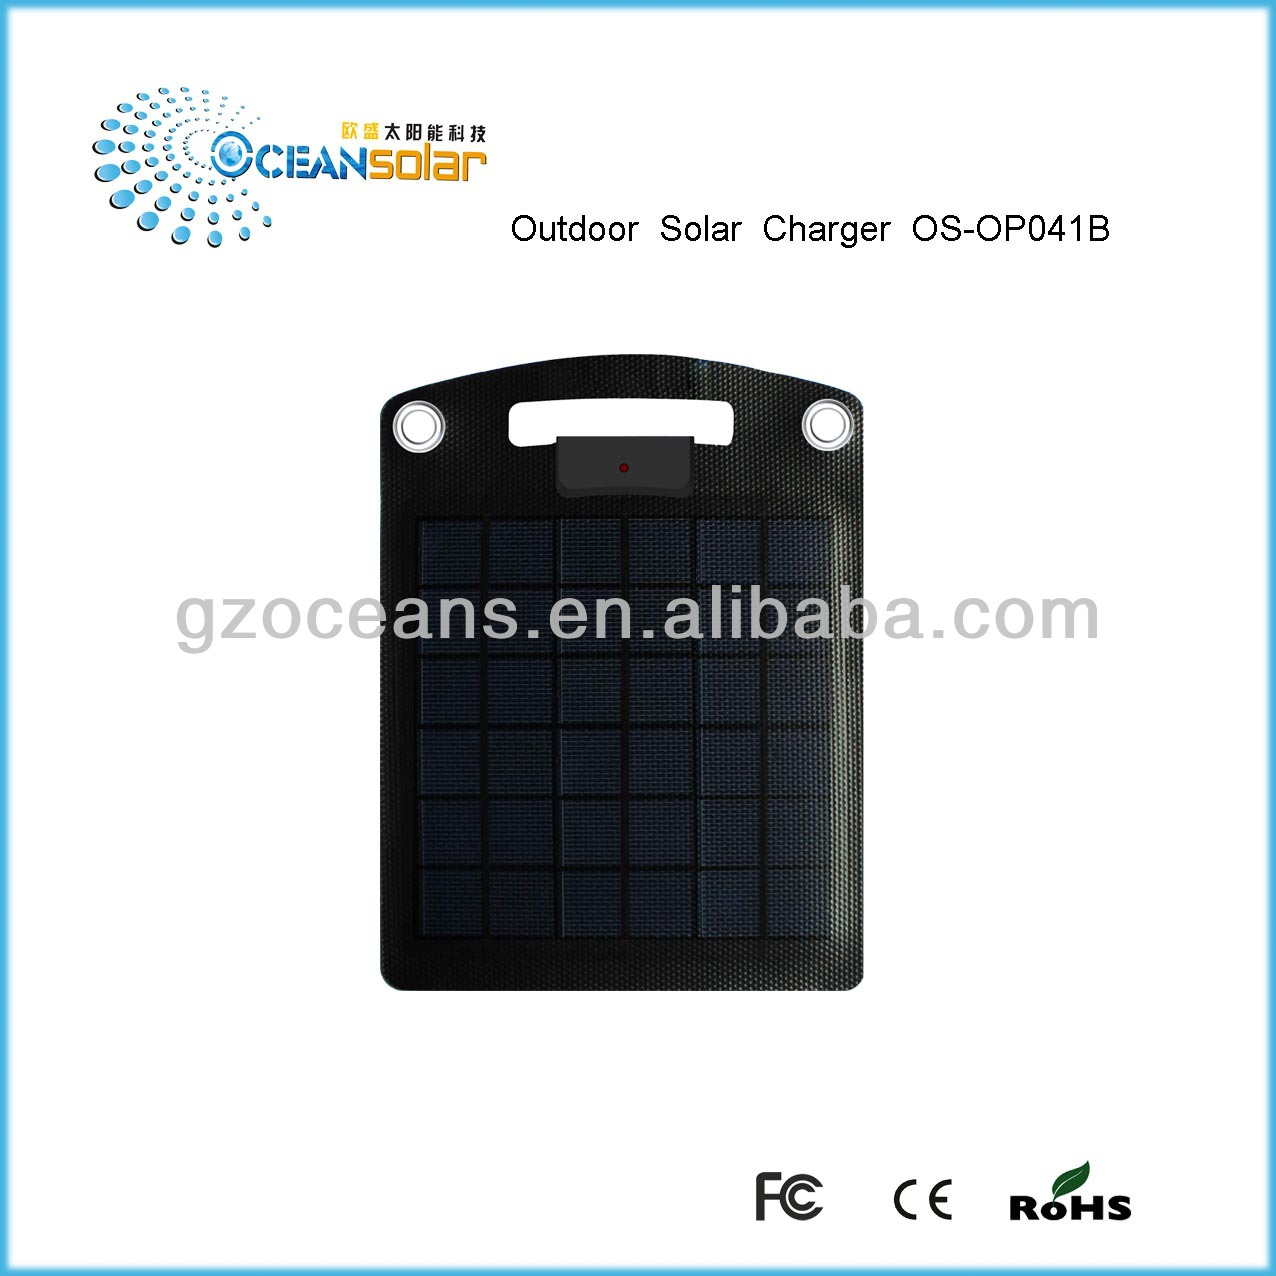 OS-OP041B outdoor solar charger mobile phone charger thin solar panel with circuit board protection controlle